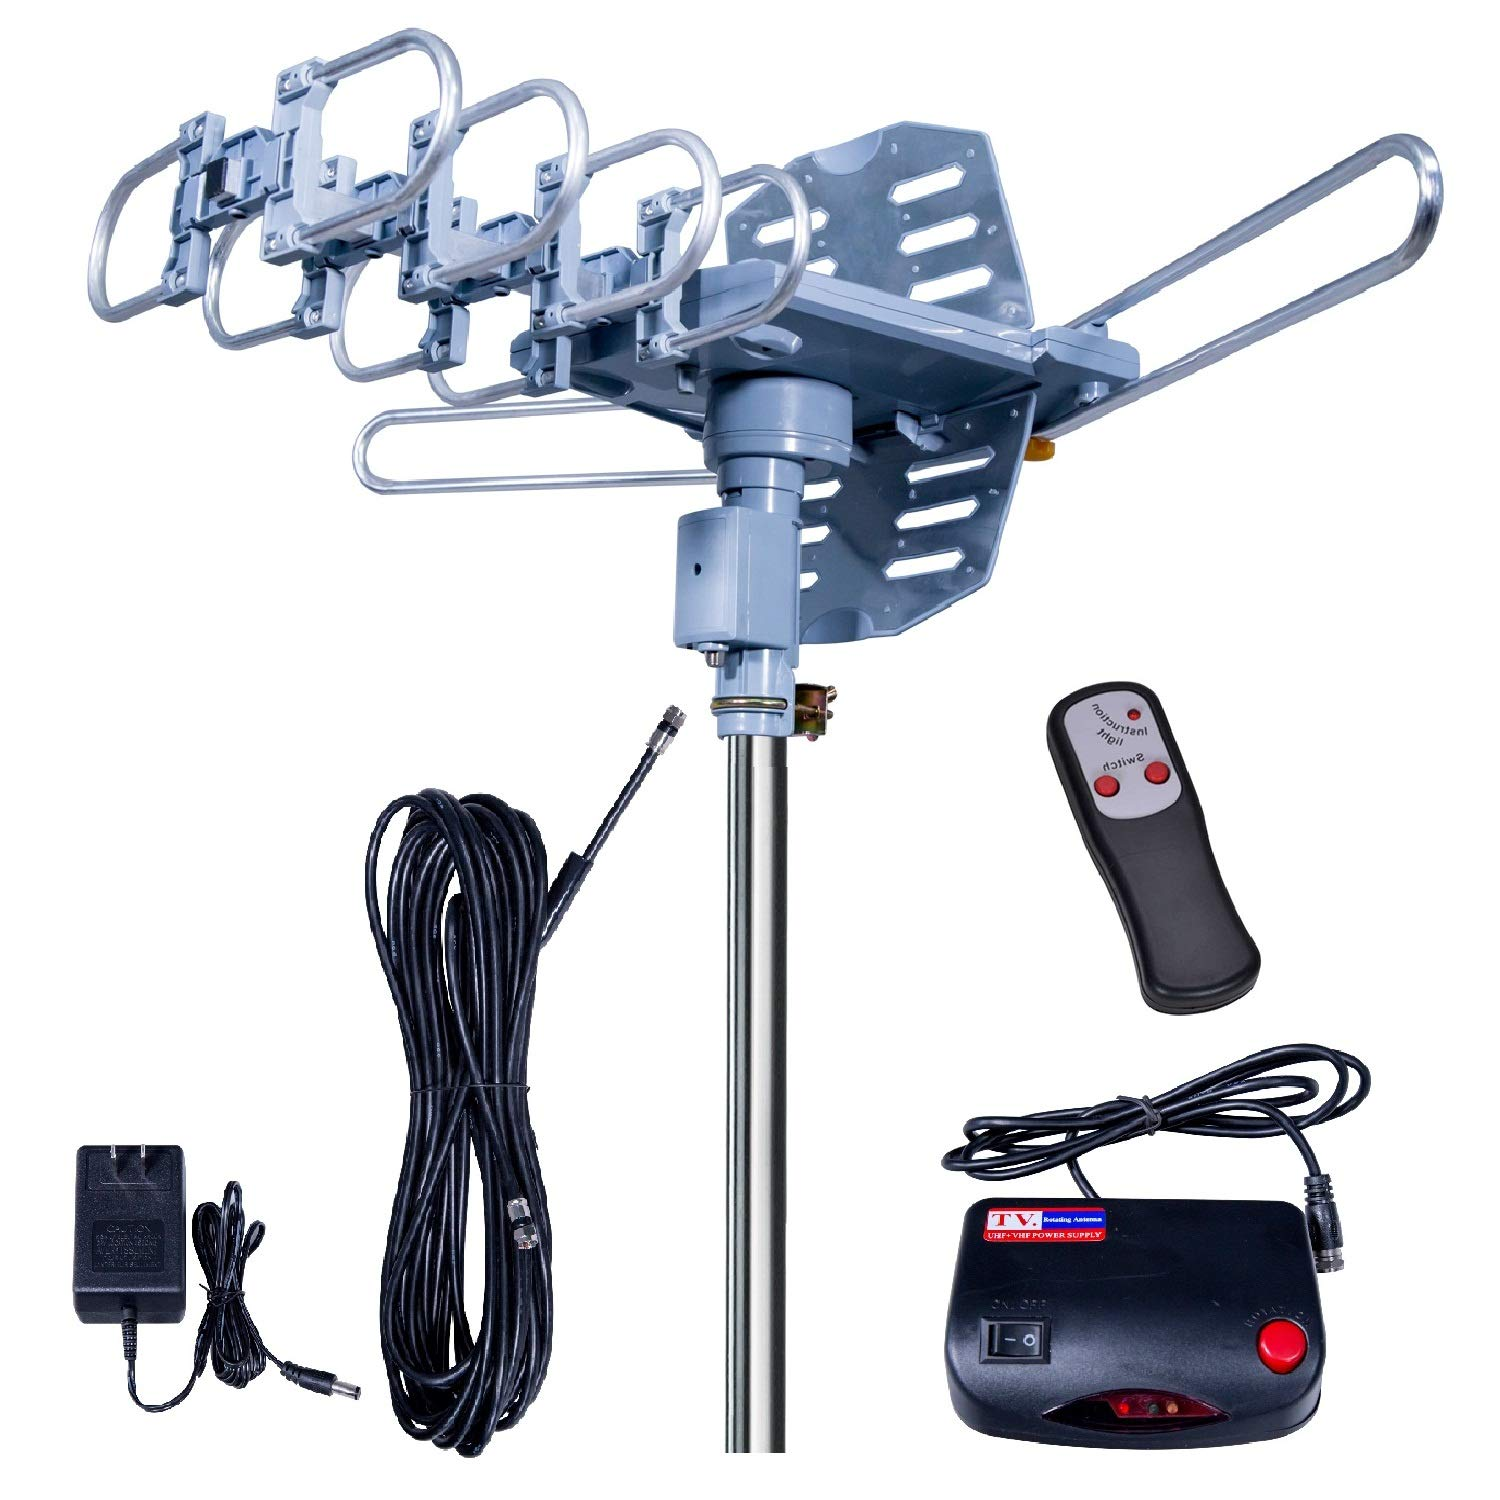 Fardalo 2019 UPDATED Amplified Outdoor TV Antenna